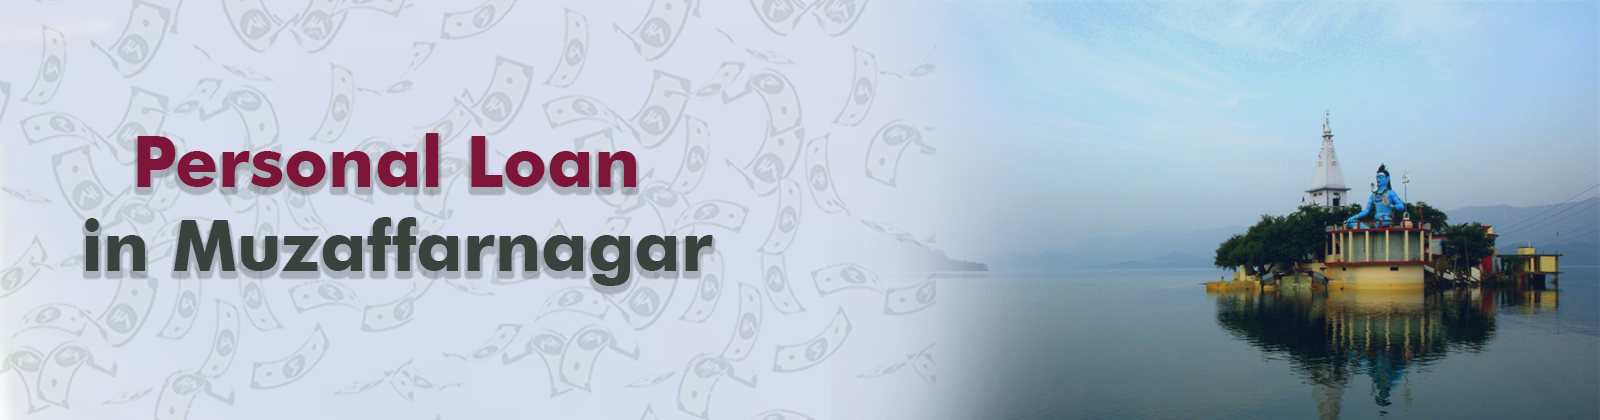 Personal Loan in Muzaffarnagar